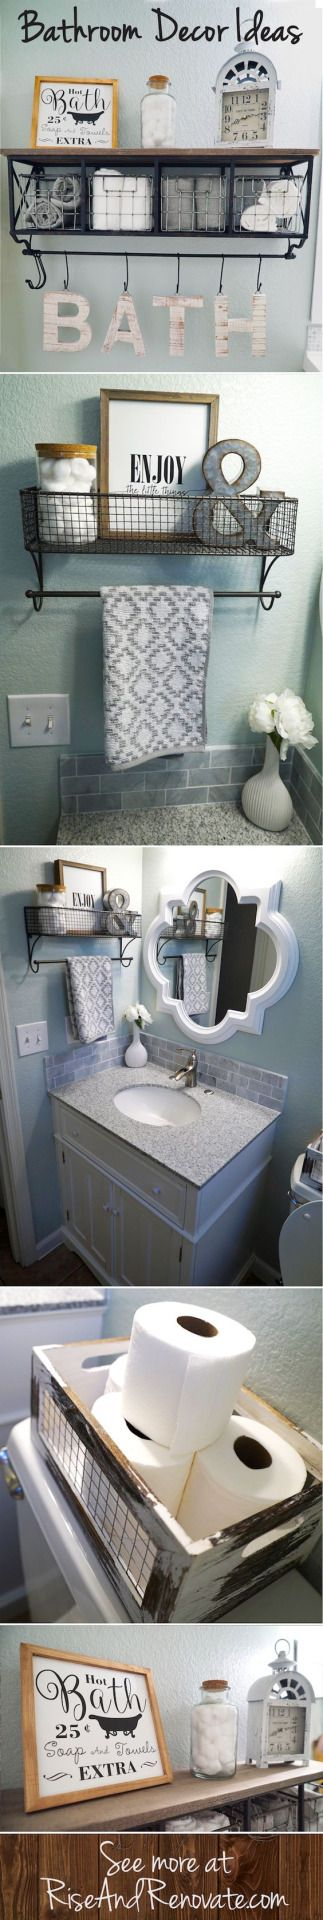 Bathroom Makeover | Sherwin Williams Sea Salt | Pinterest Makeover | Farmhouse Decor | Vintage Decor | Rolled Towels | Marble Counter Top | Painting Bathroom Vanity | Framing a Bathroom Mirror | DIY...